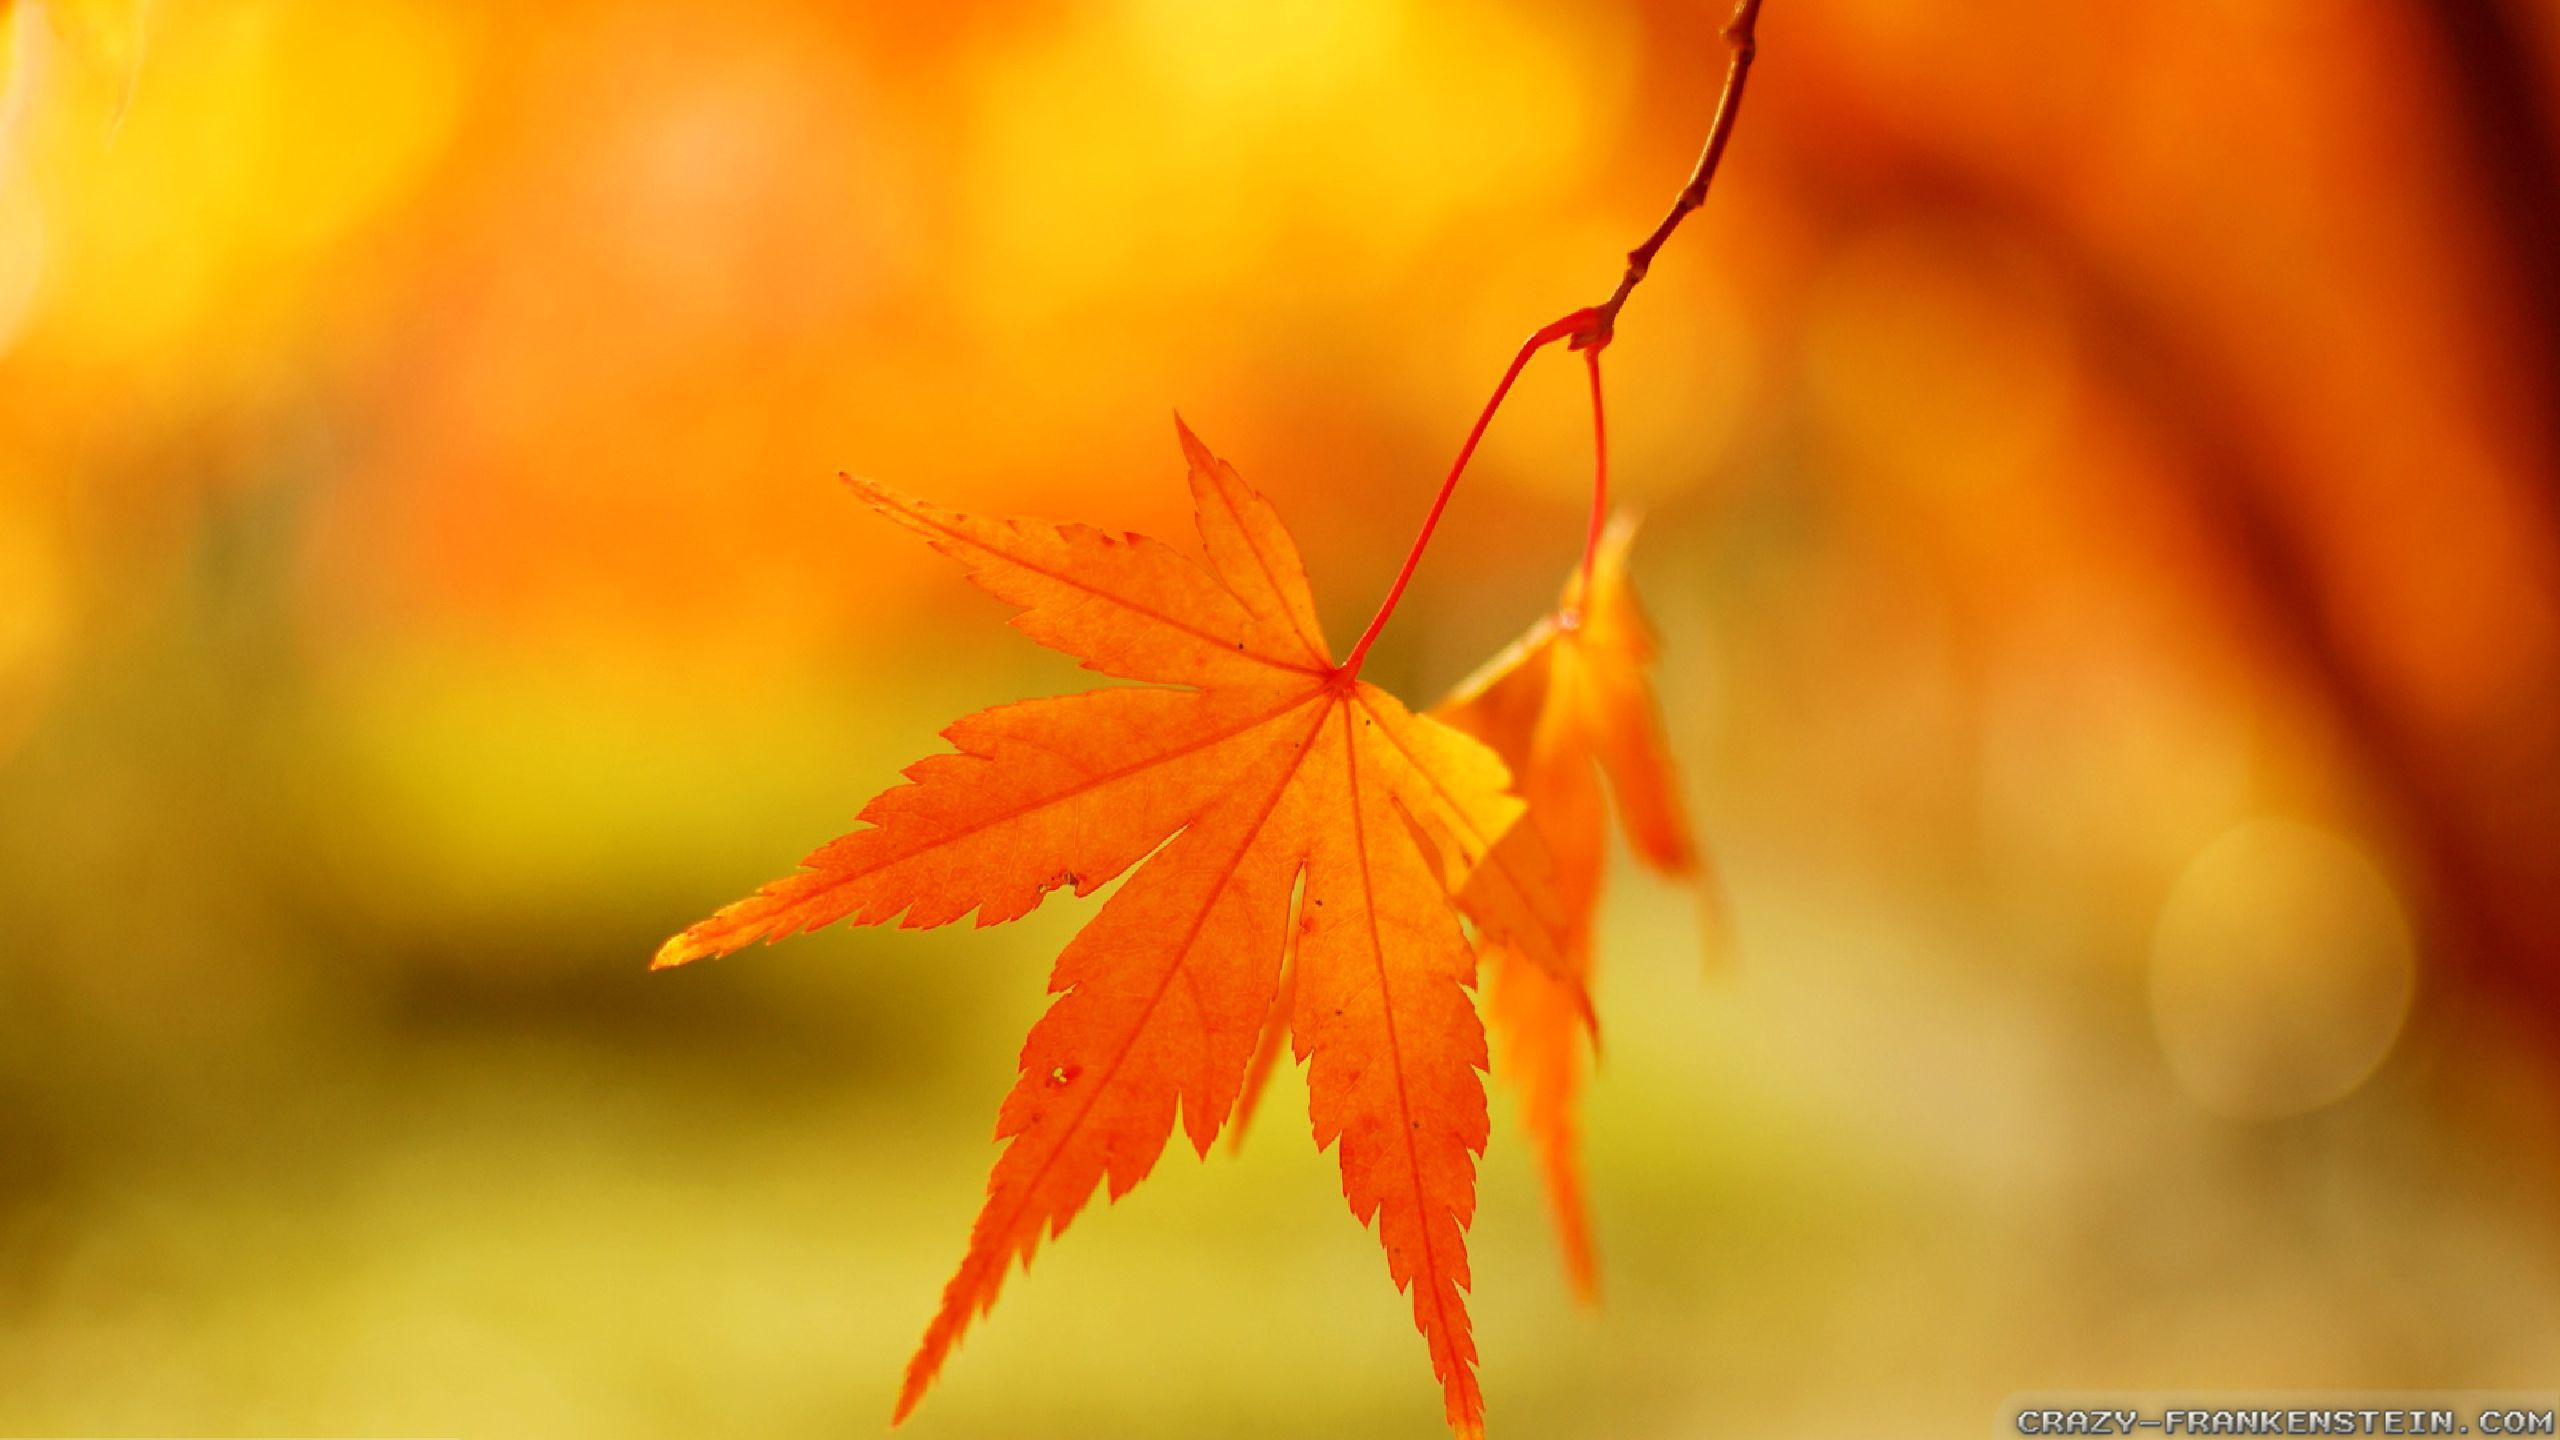 Fall Of The Leafe Wallpaper Autumn Leaf Wallpapers Seasonal Crazy Frankenstein